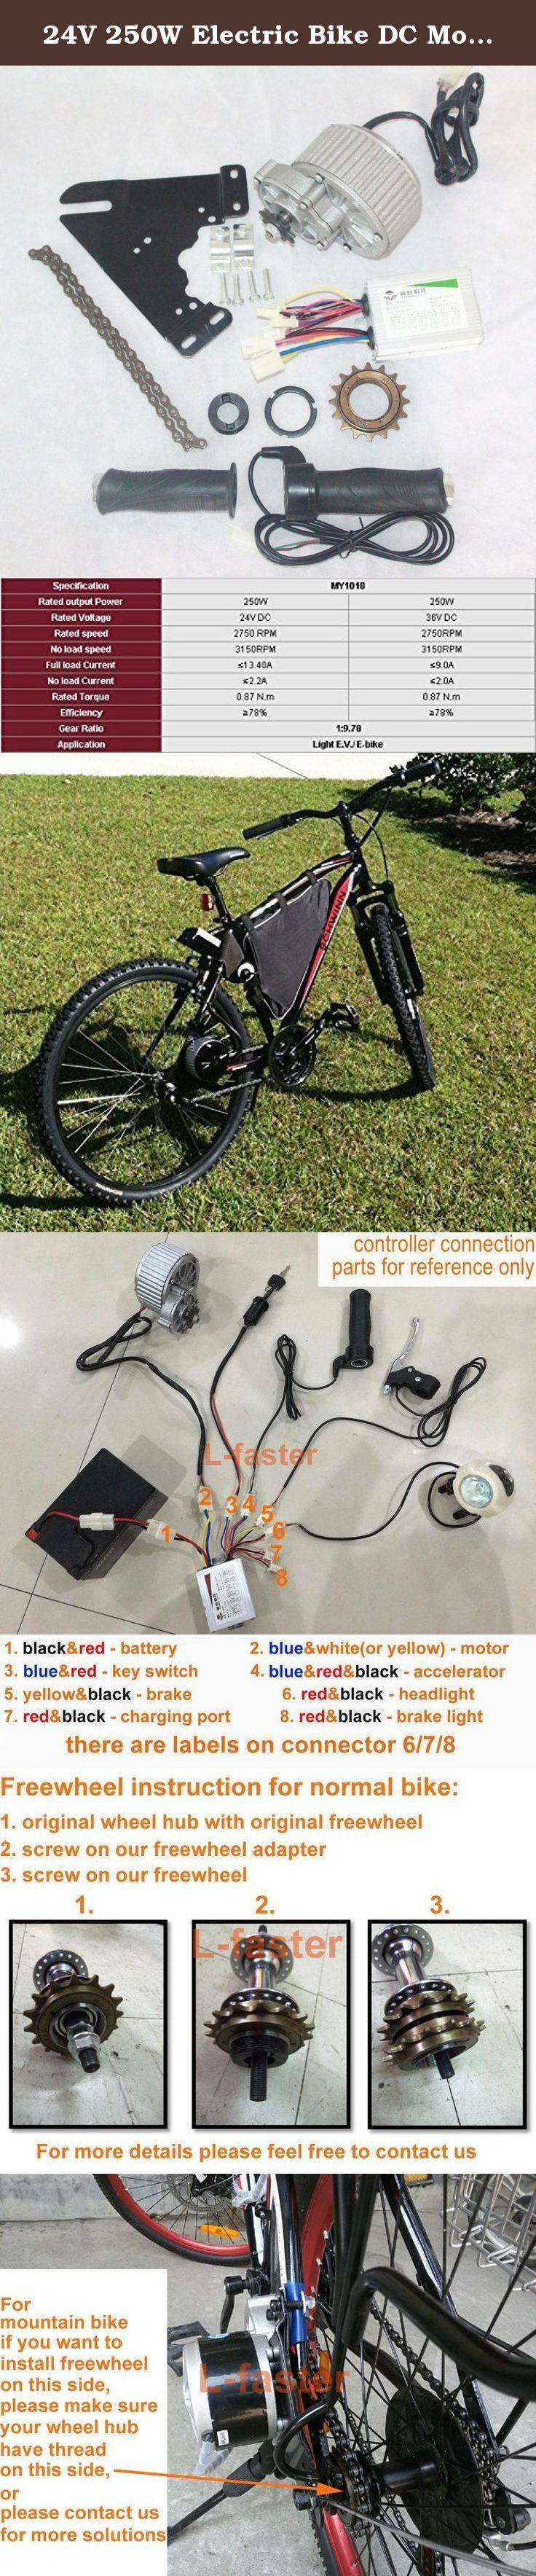 24v 250w Electric Bike Dc Motor Electric Scooter Motor Electric Bicycle Conversi In 2020 Electric Bicycle Conversion Kit Electric Bicycle Gear Reduction